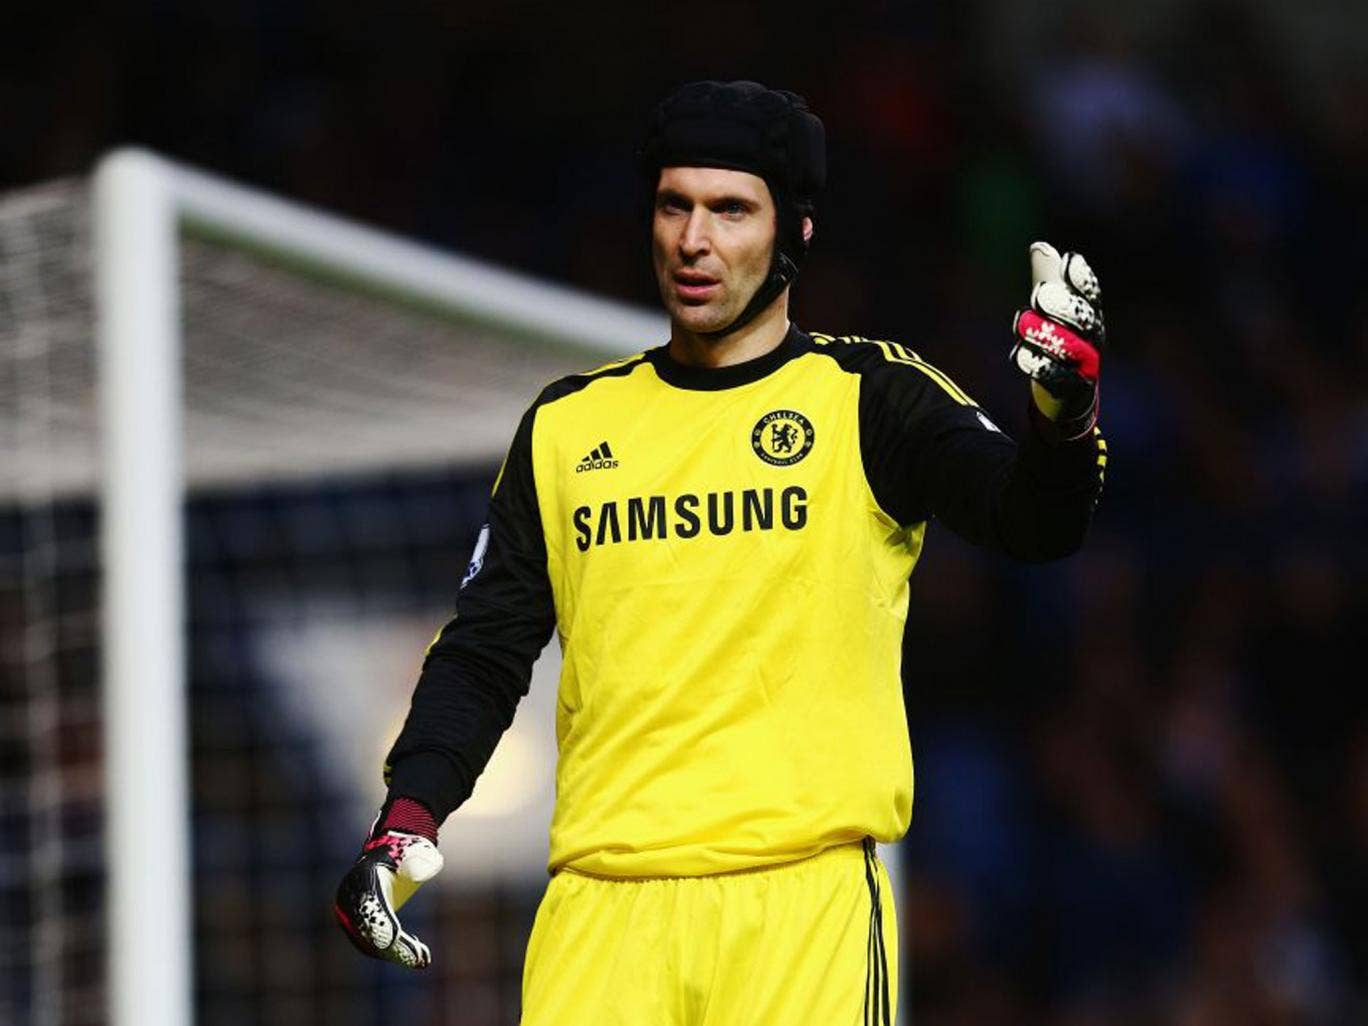 Petr Cech said there were no points for style in the league